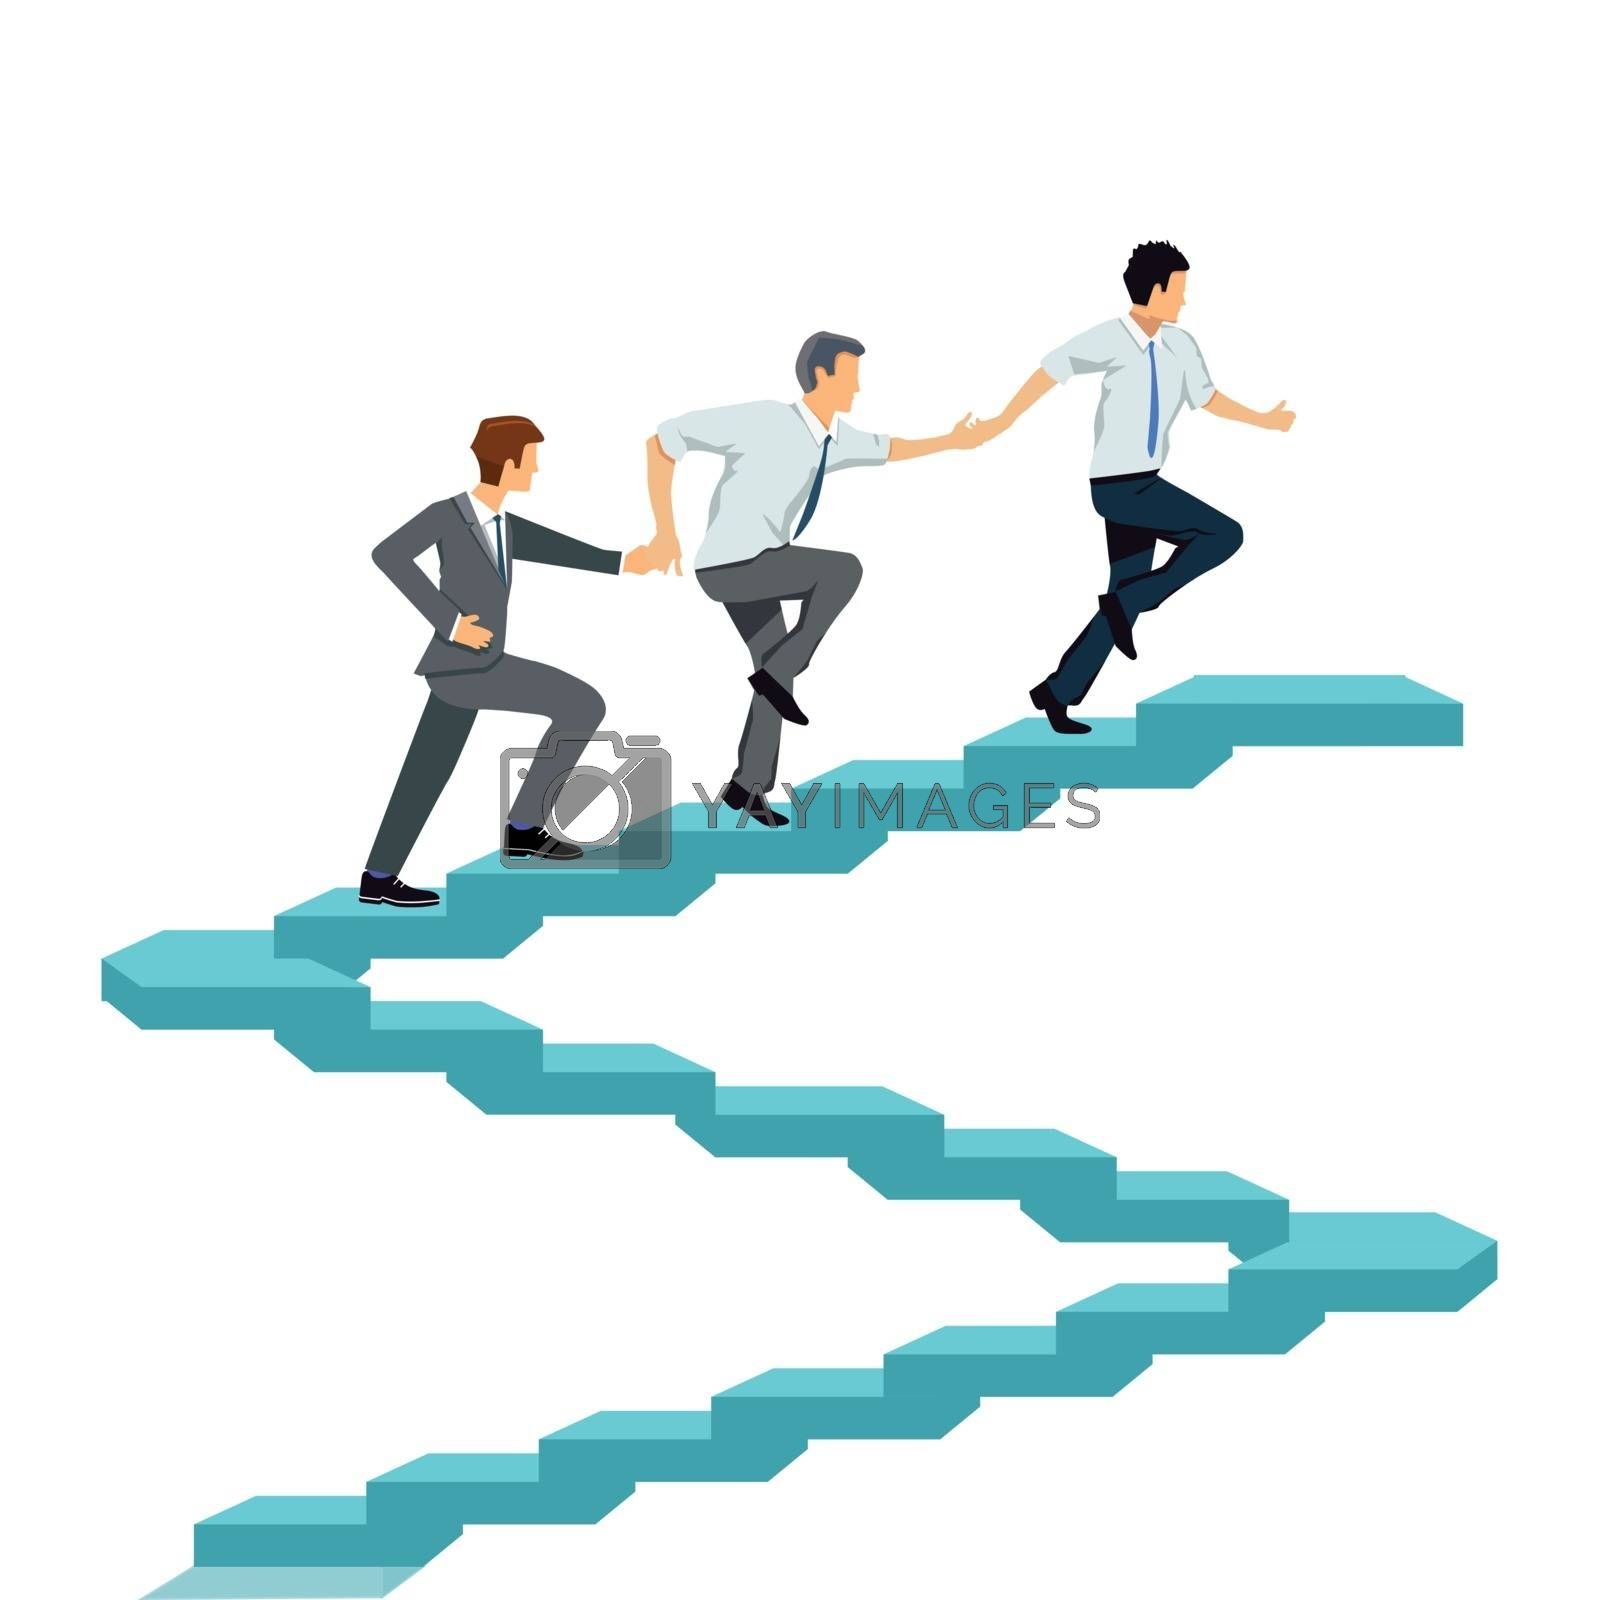 Successfully climb up together, teamwork illustration